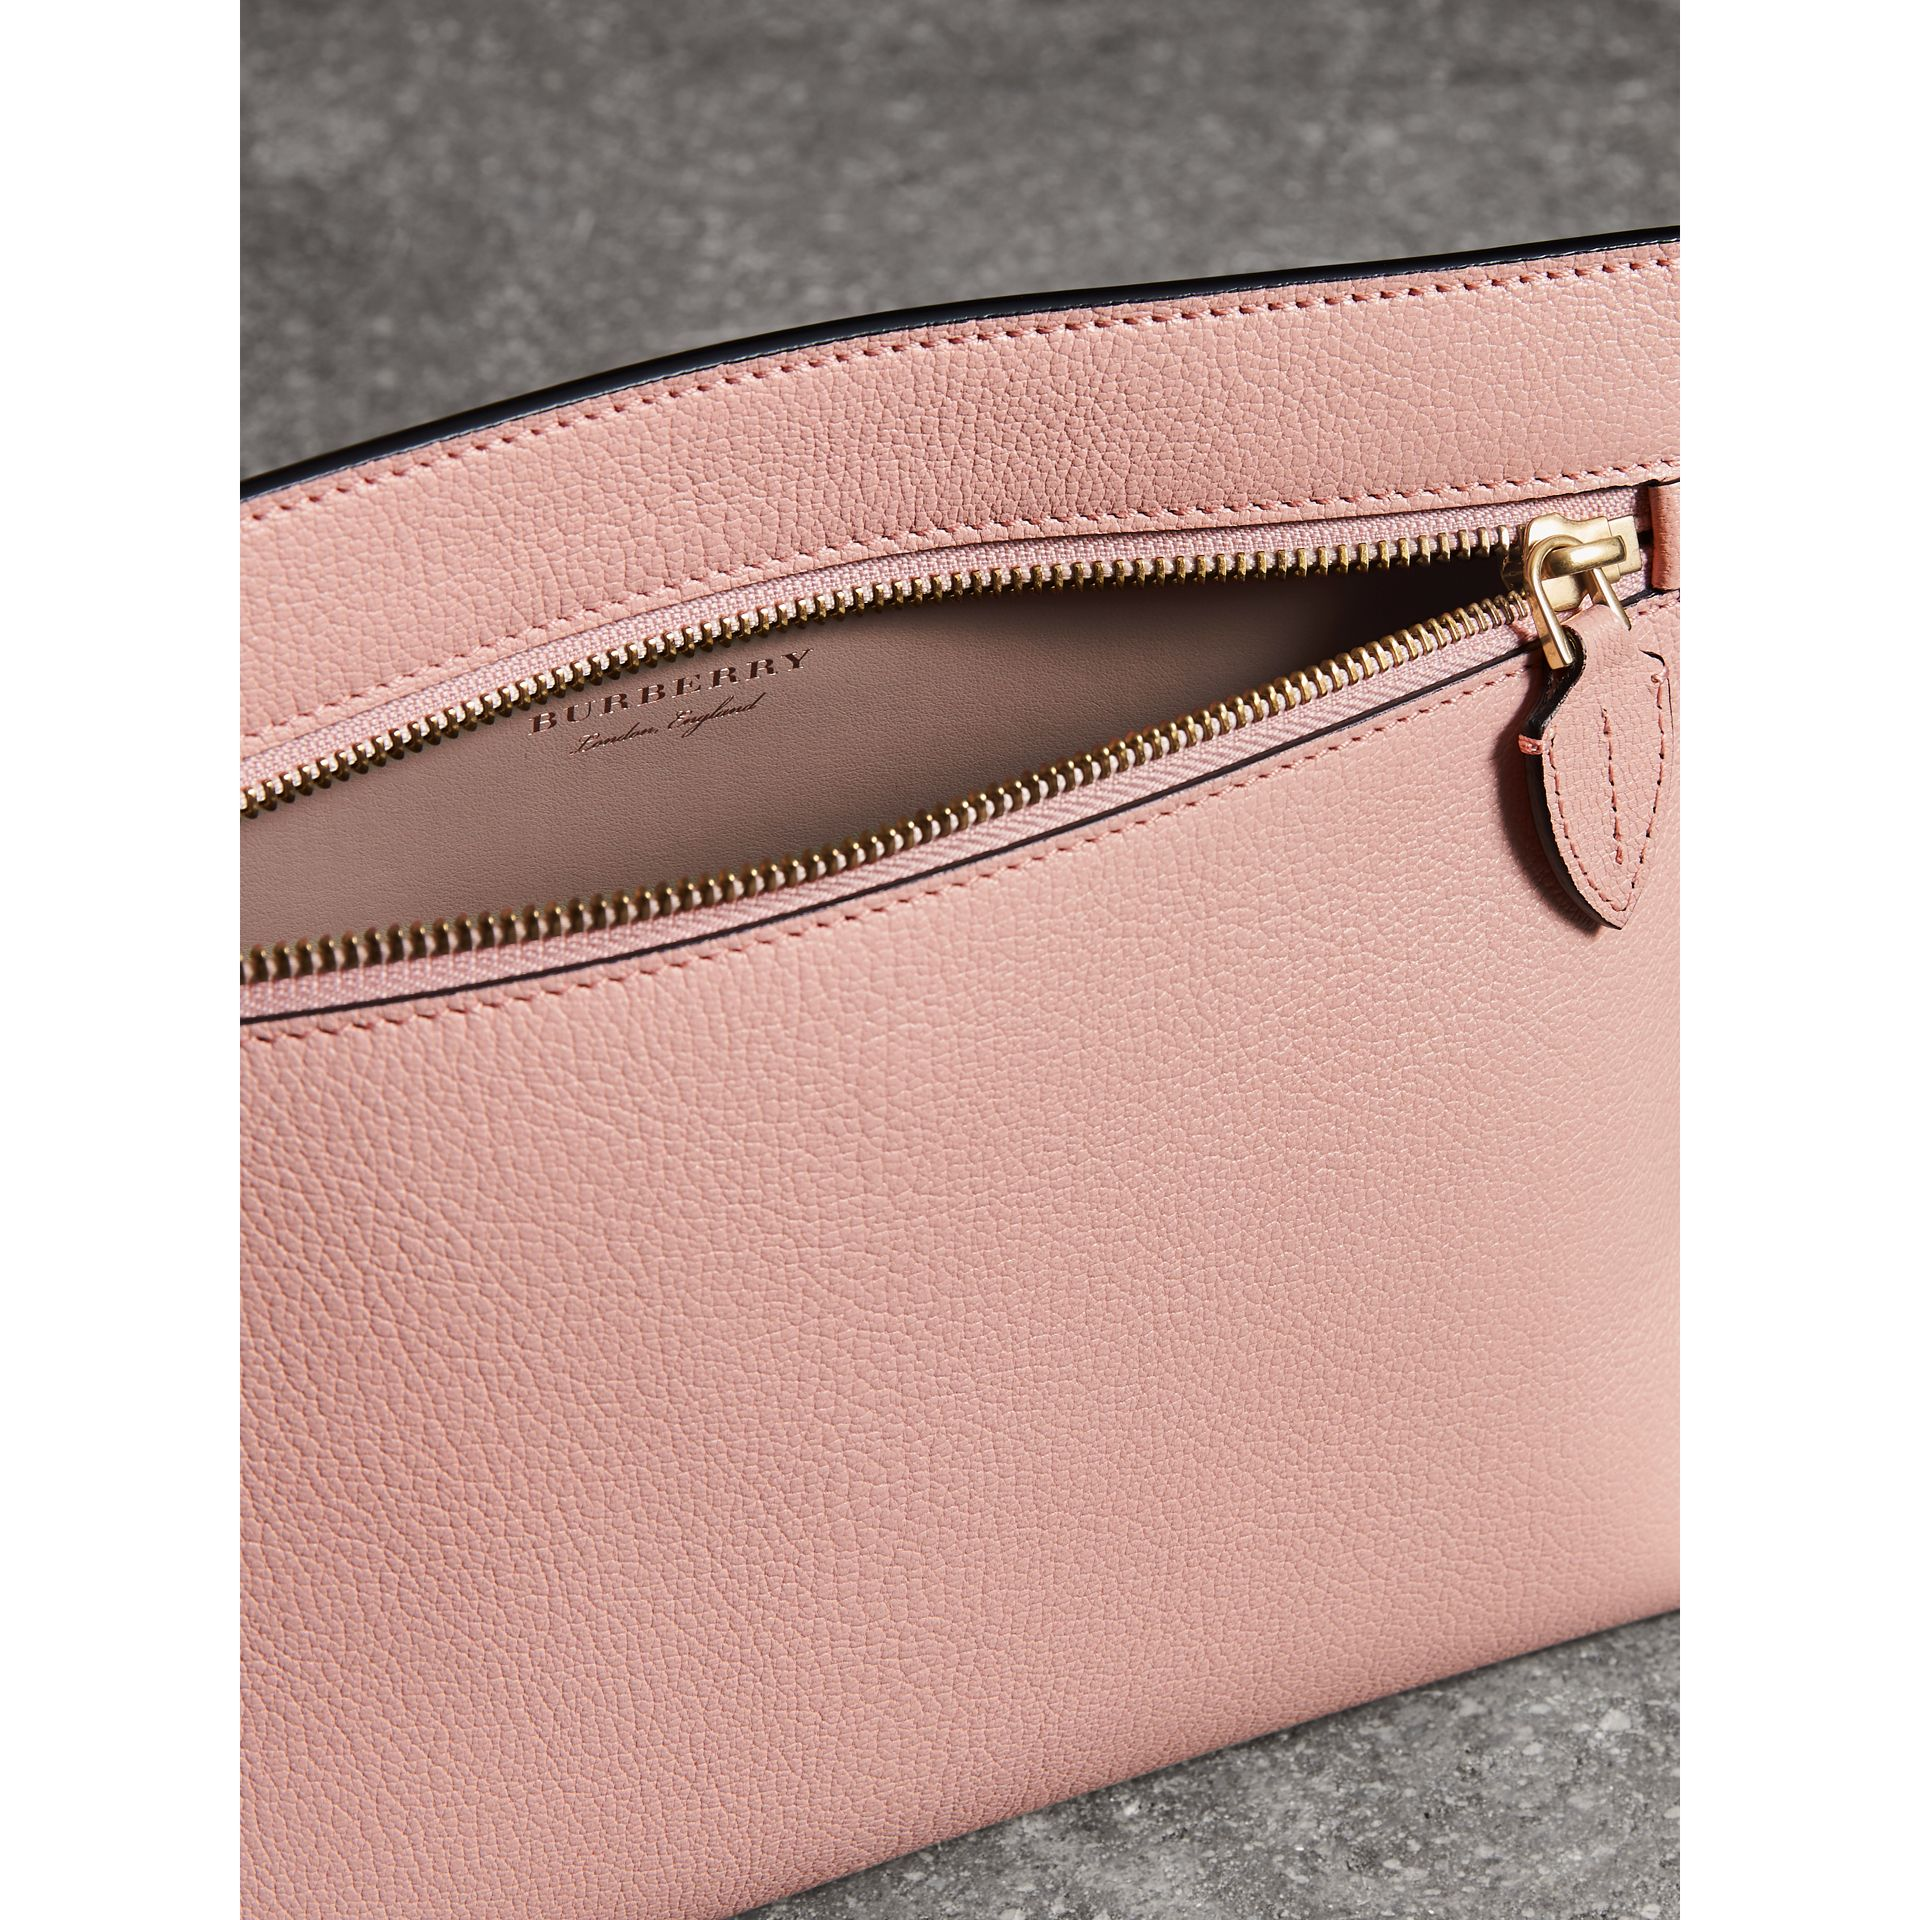 Grainy Leather Wristlet Clutch in Pale Ash Rose - Women | Burberry - gallery image 5